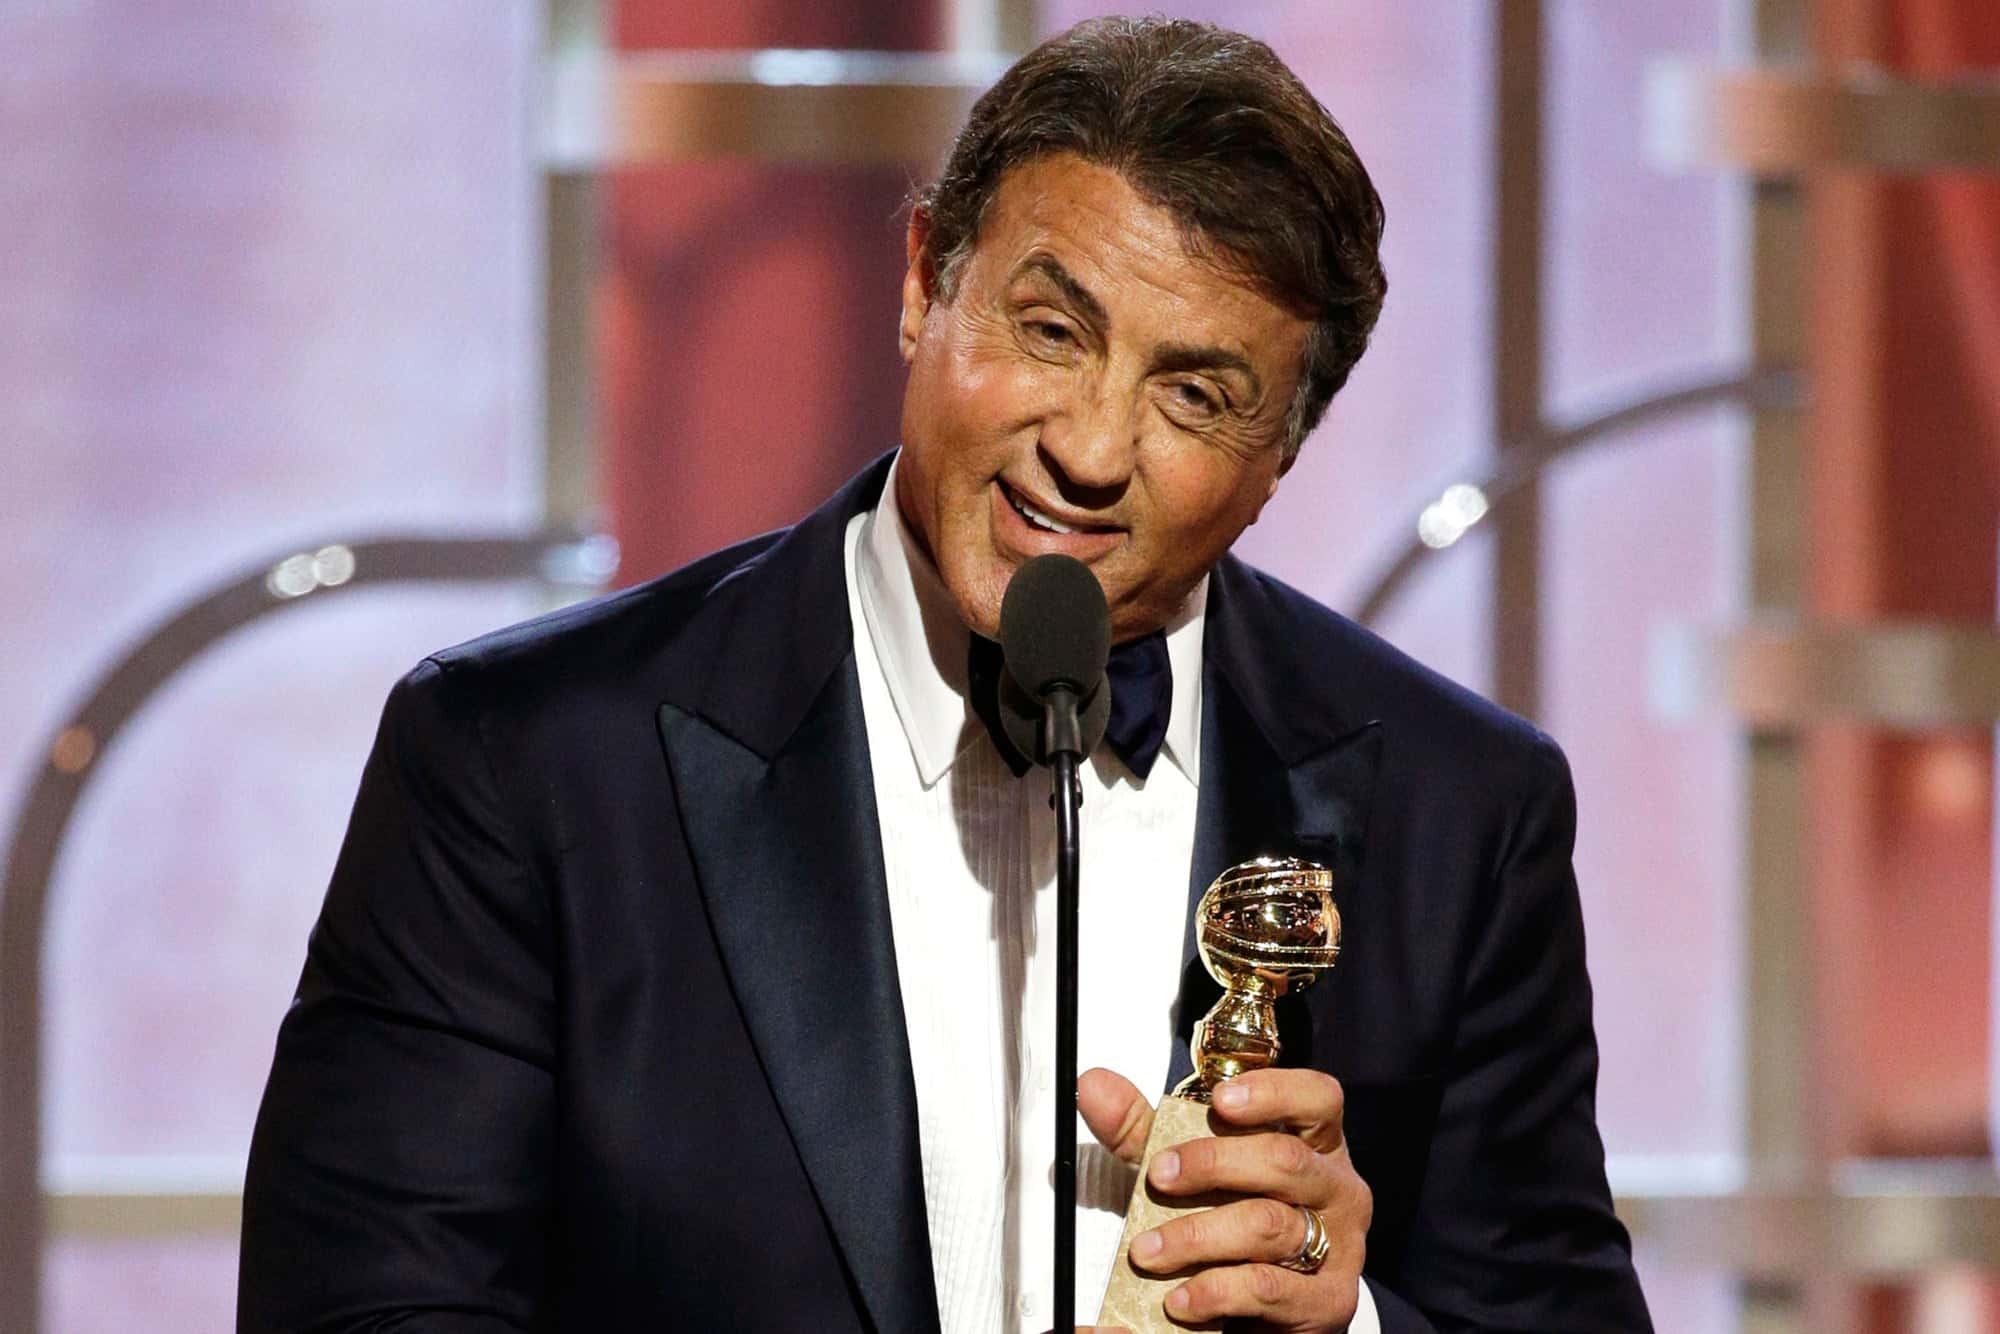 Sylvester Stallone American Actor, Director, Screenwriter, and Producer